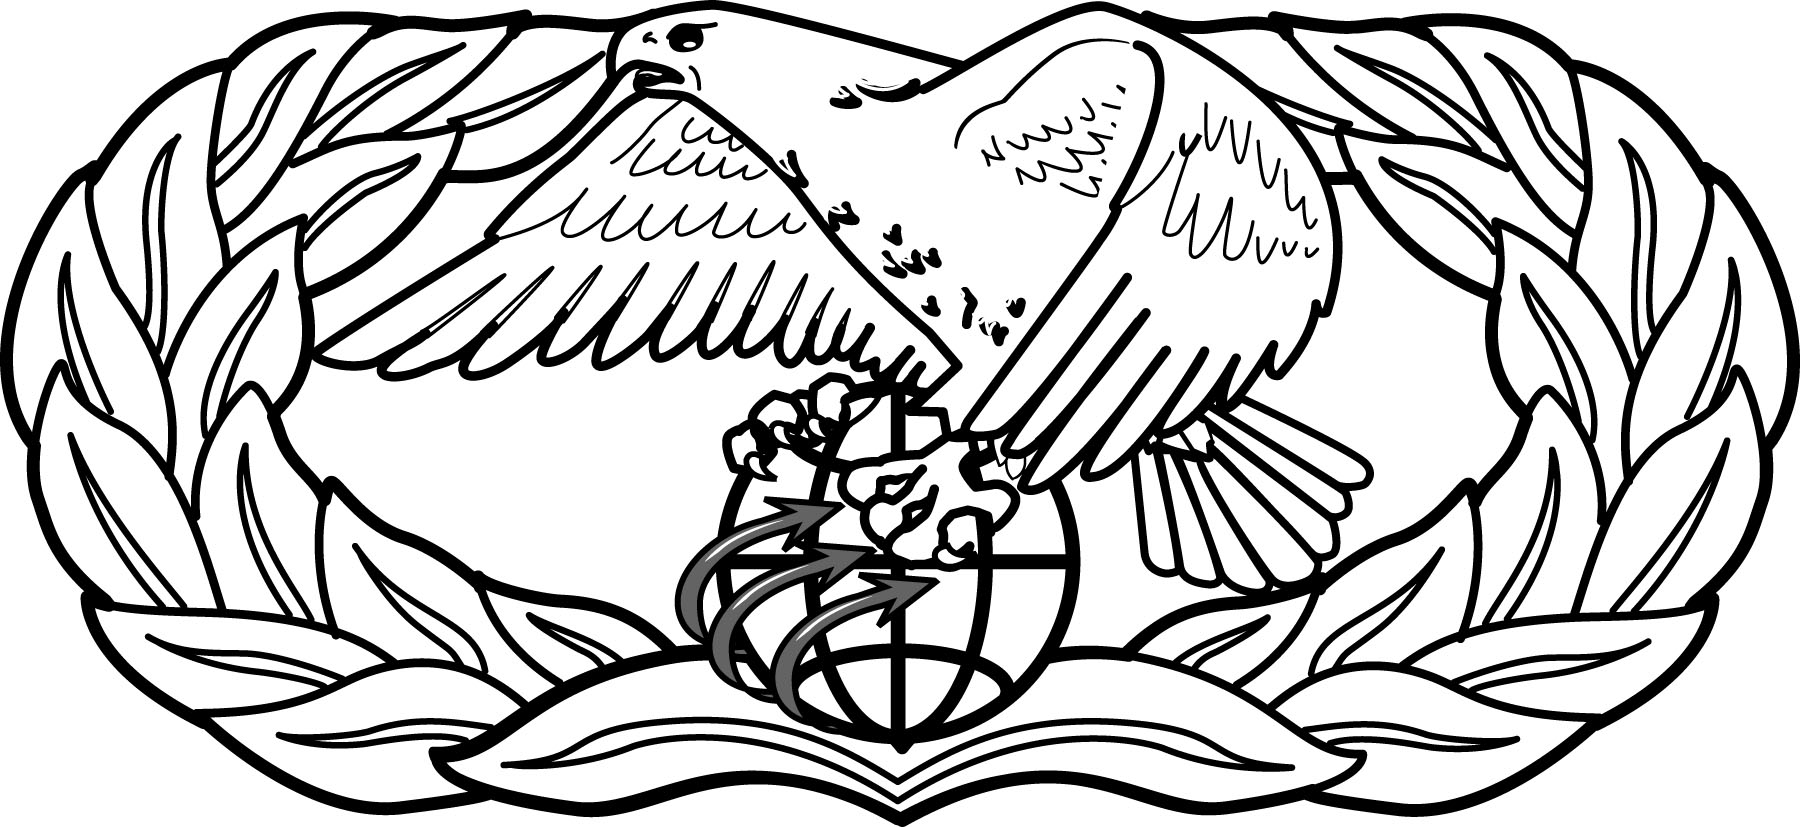 military coloring pages air force - photo#21